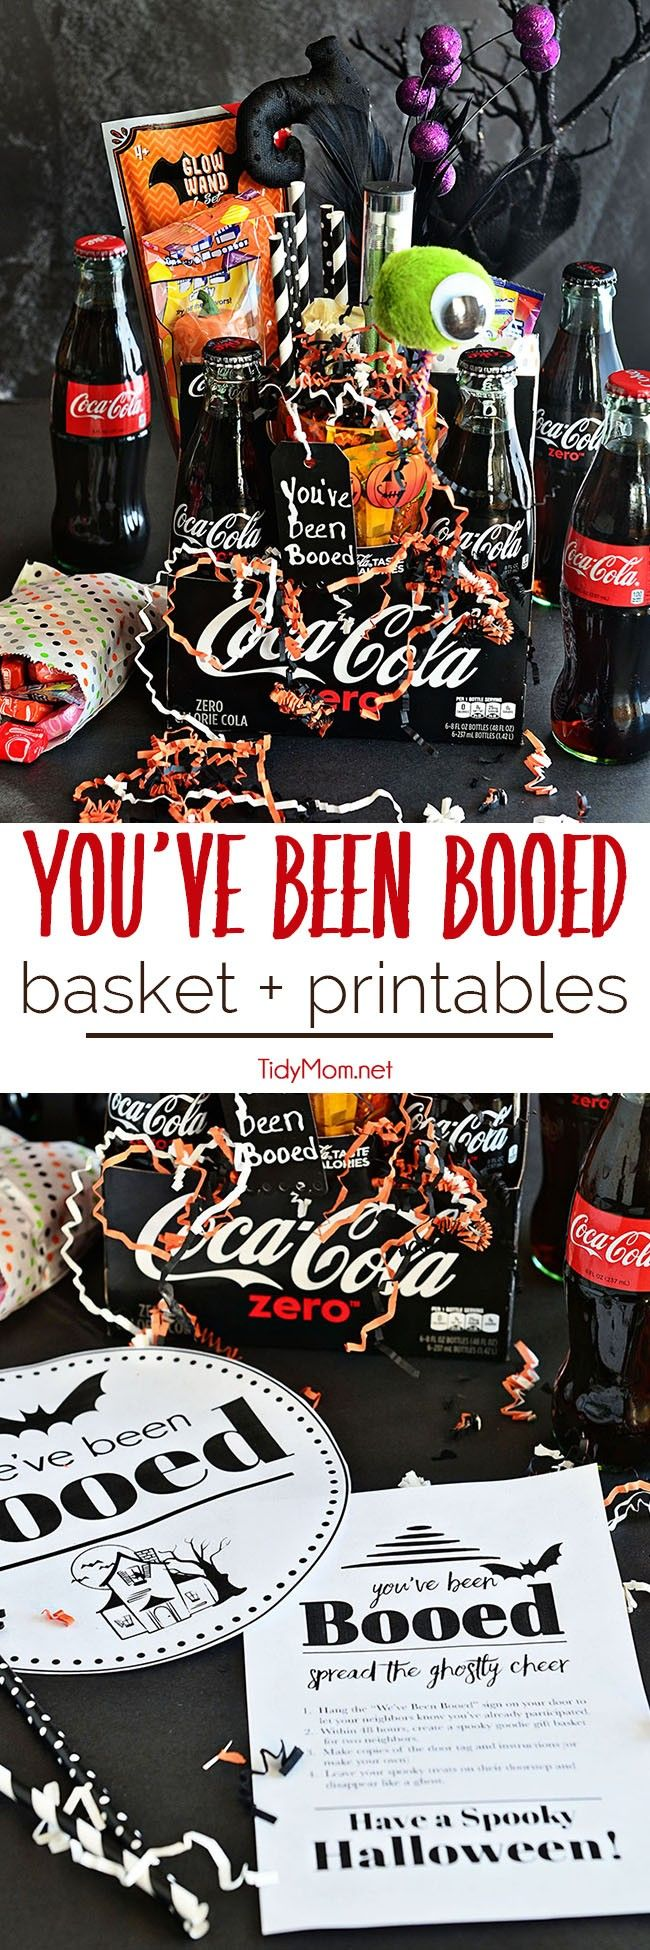 Best 449 HALLOWEEN images on Pinterest | Holidays and events ...